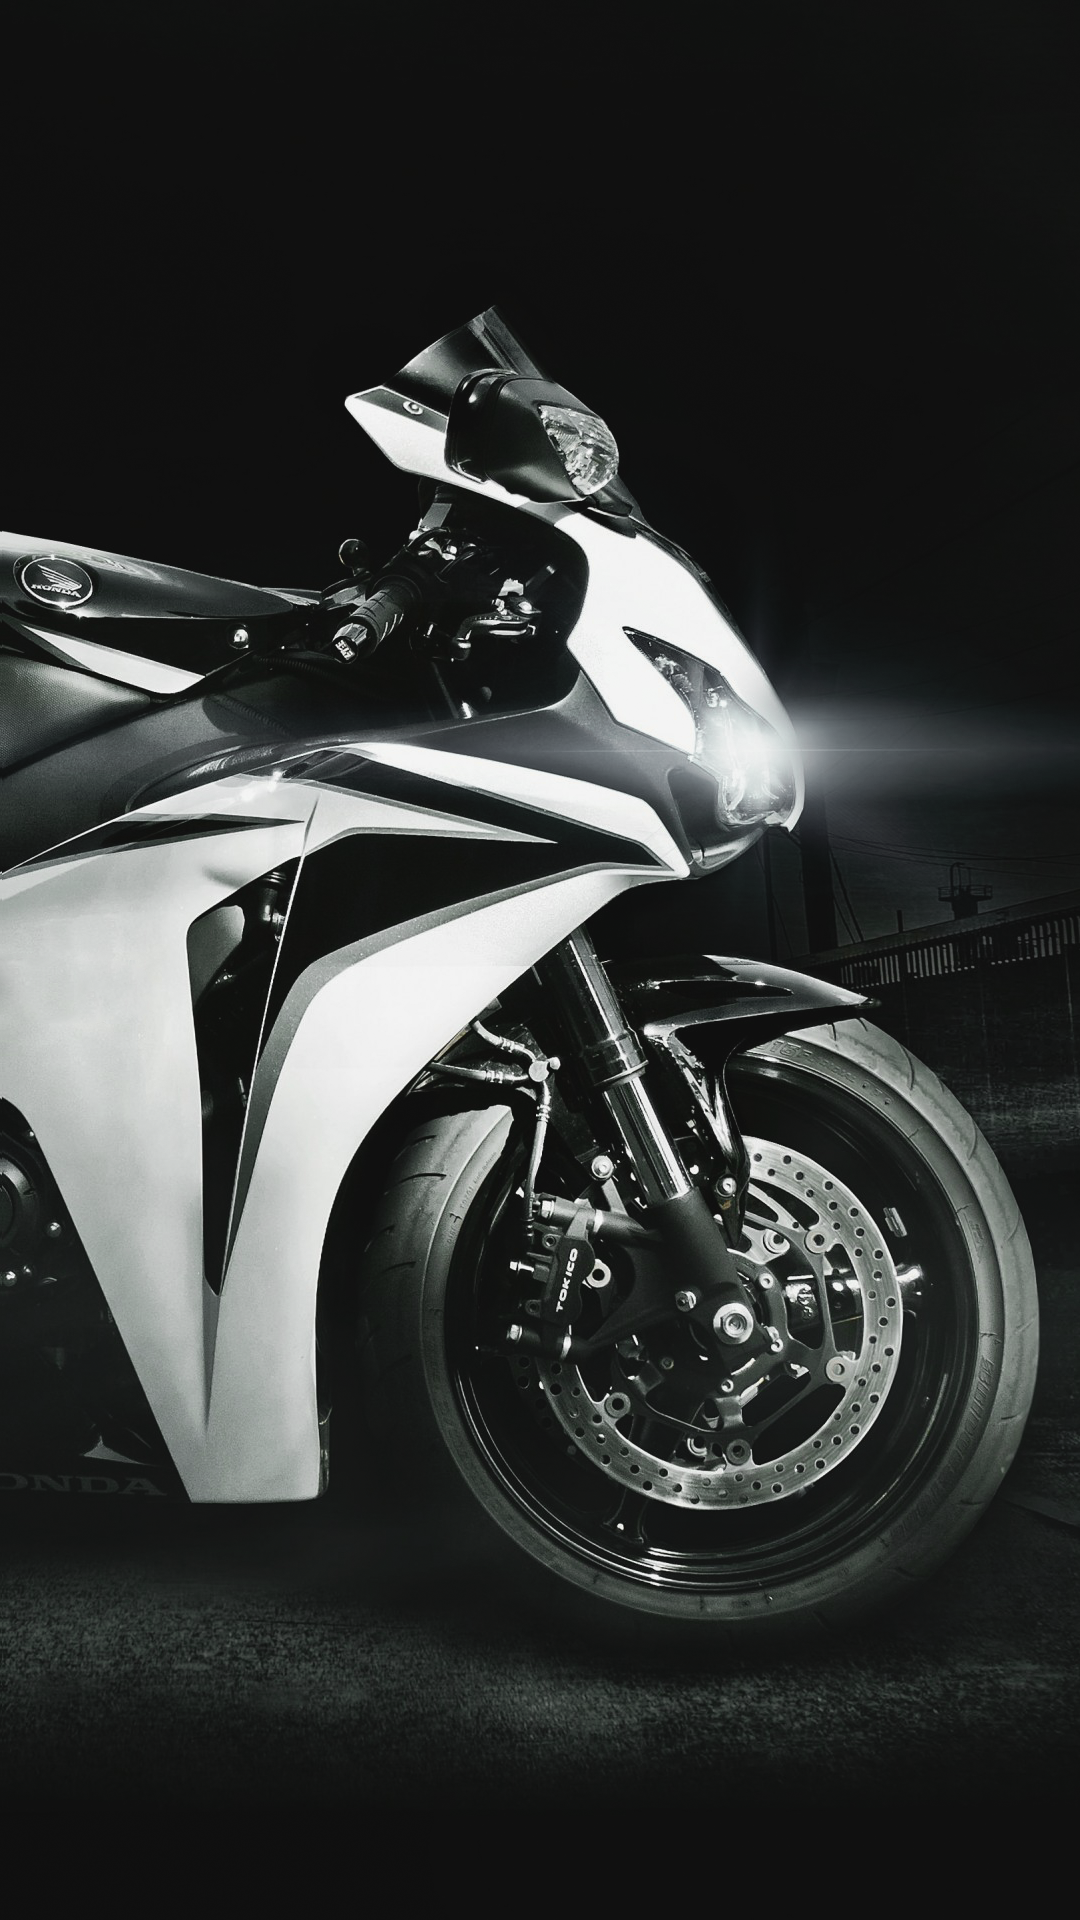 Ultra HD Honda Superbike Wallpaper For Your Mobile Phone